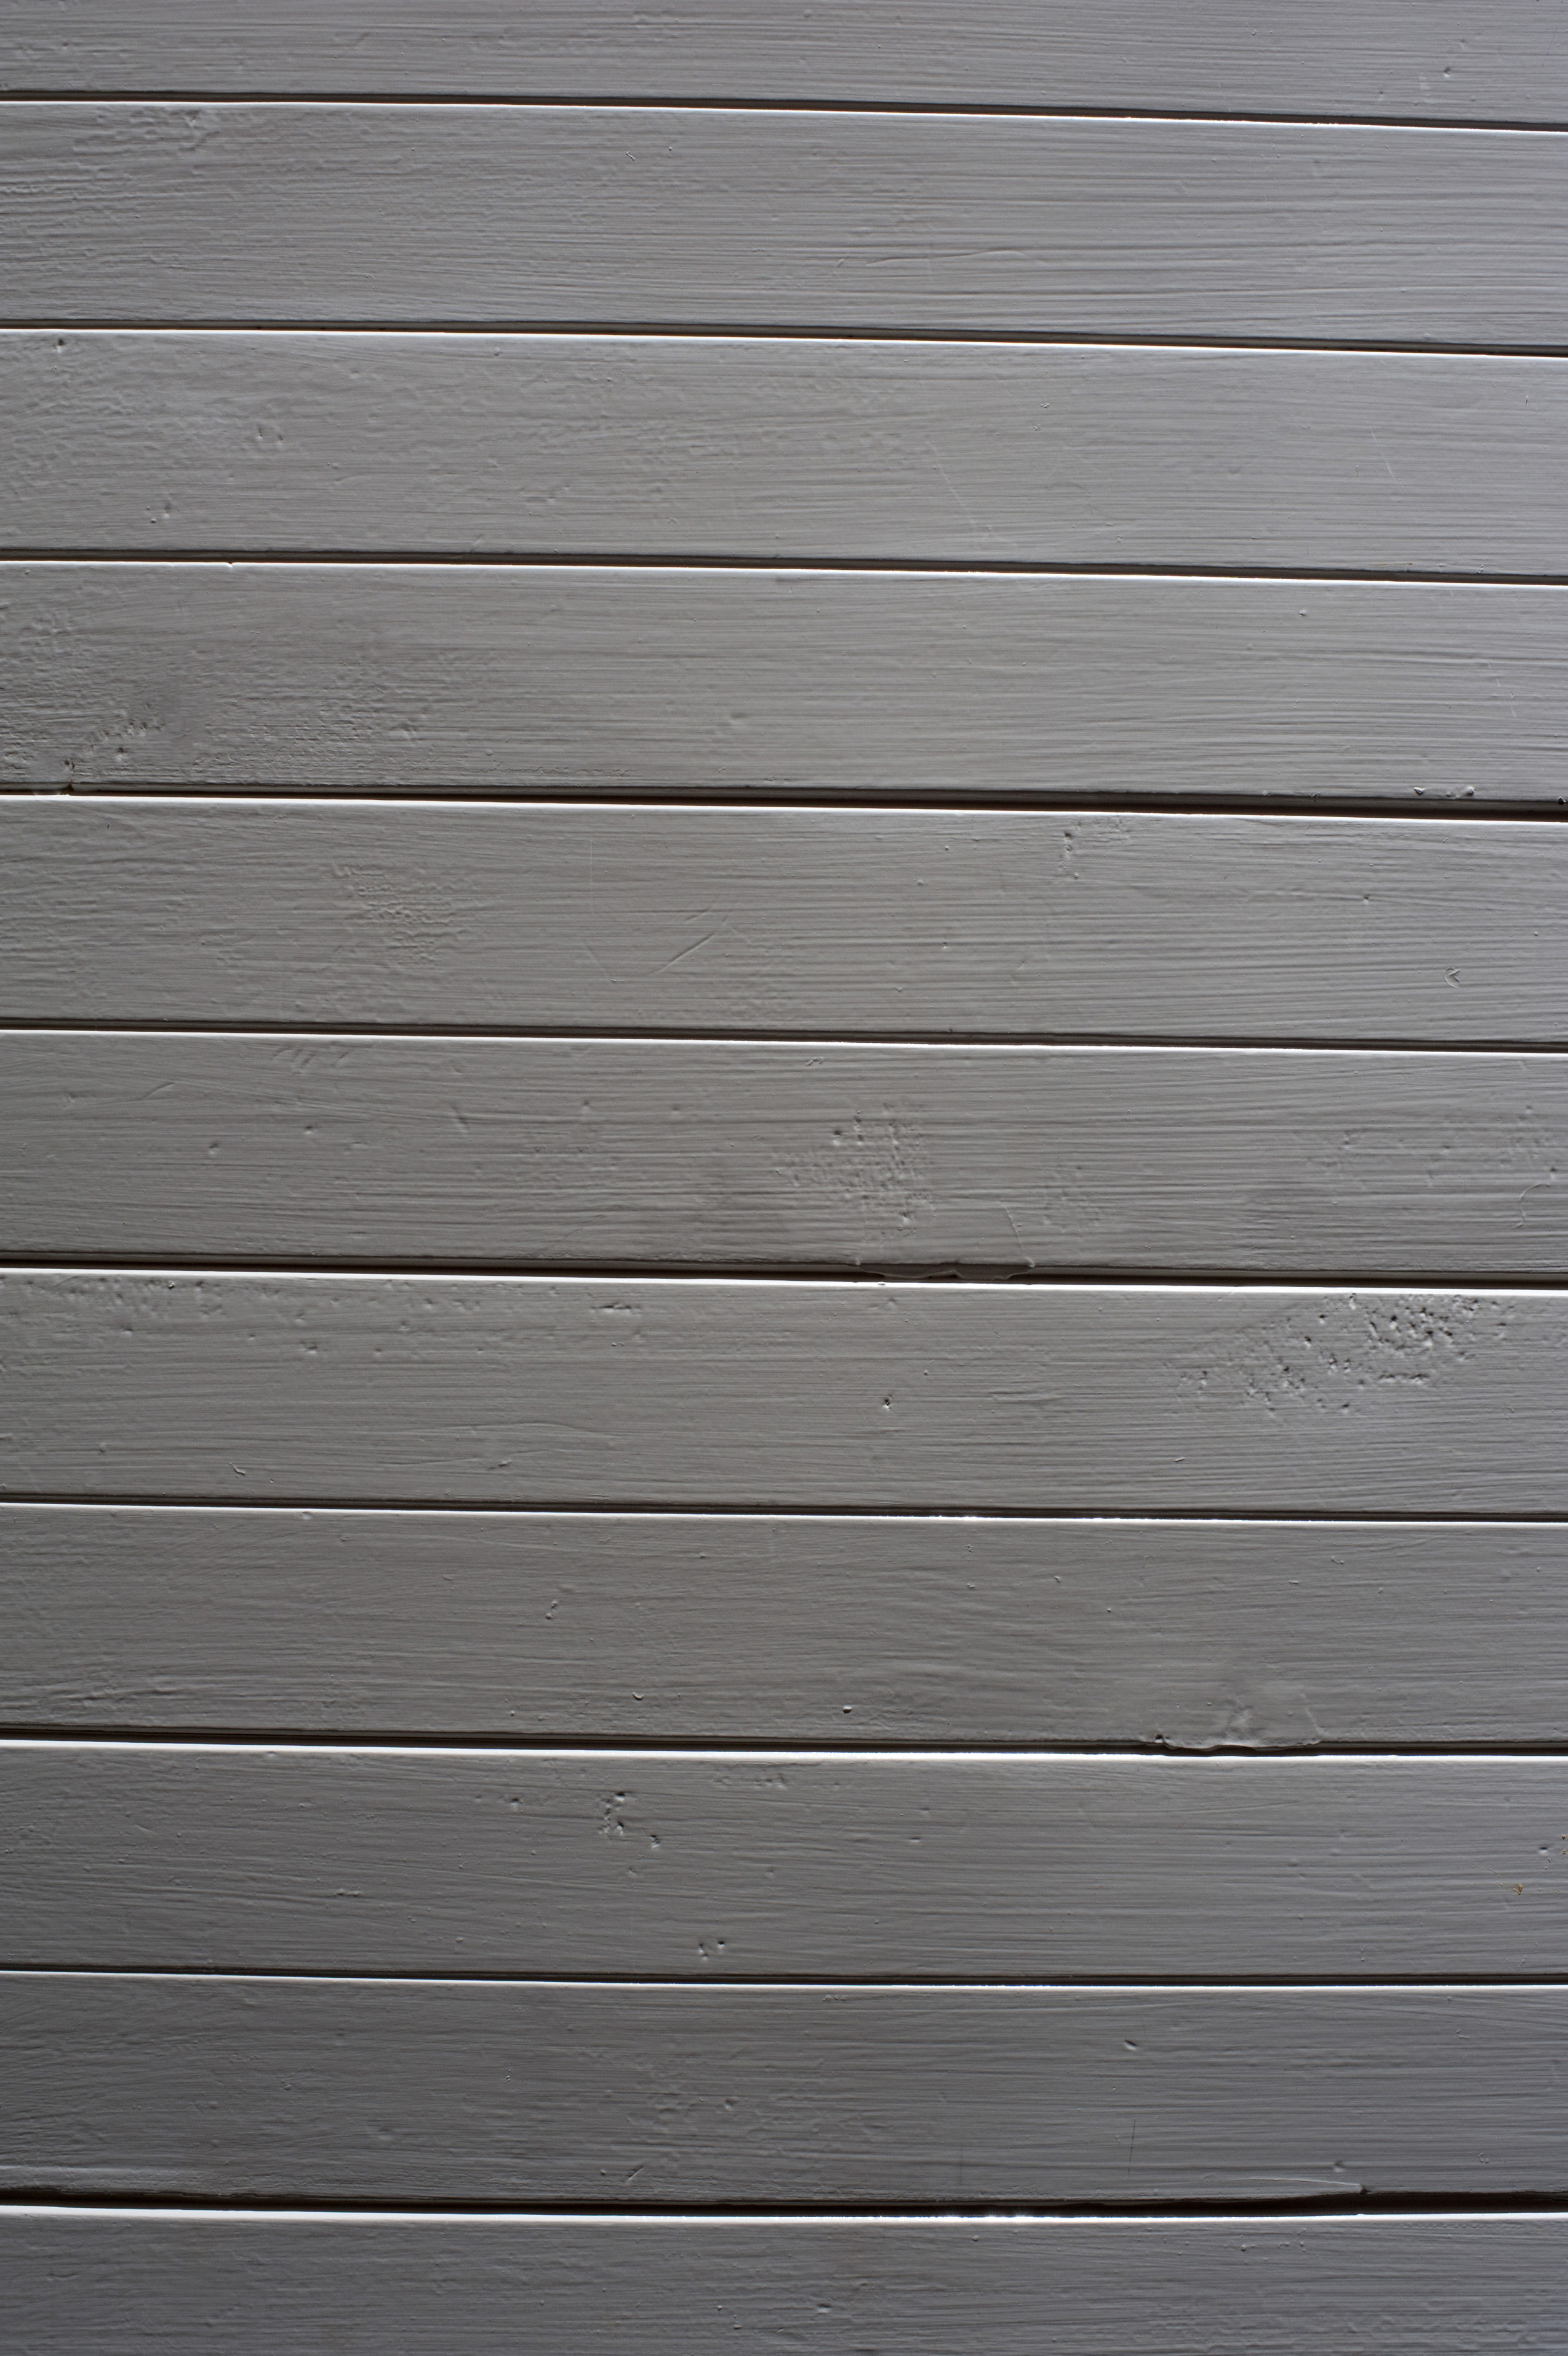 Horizontal wooden dado : Free backgrounds and textures ...